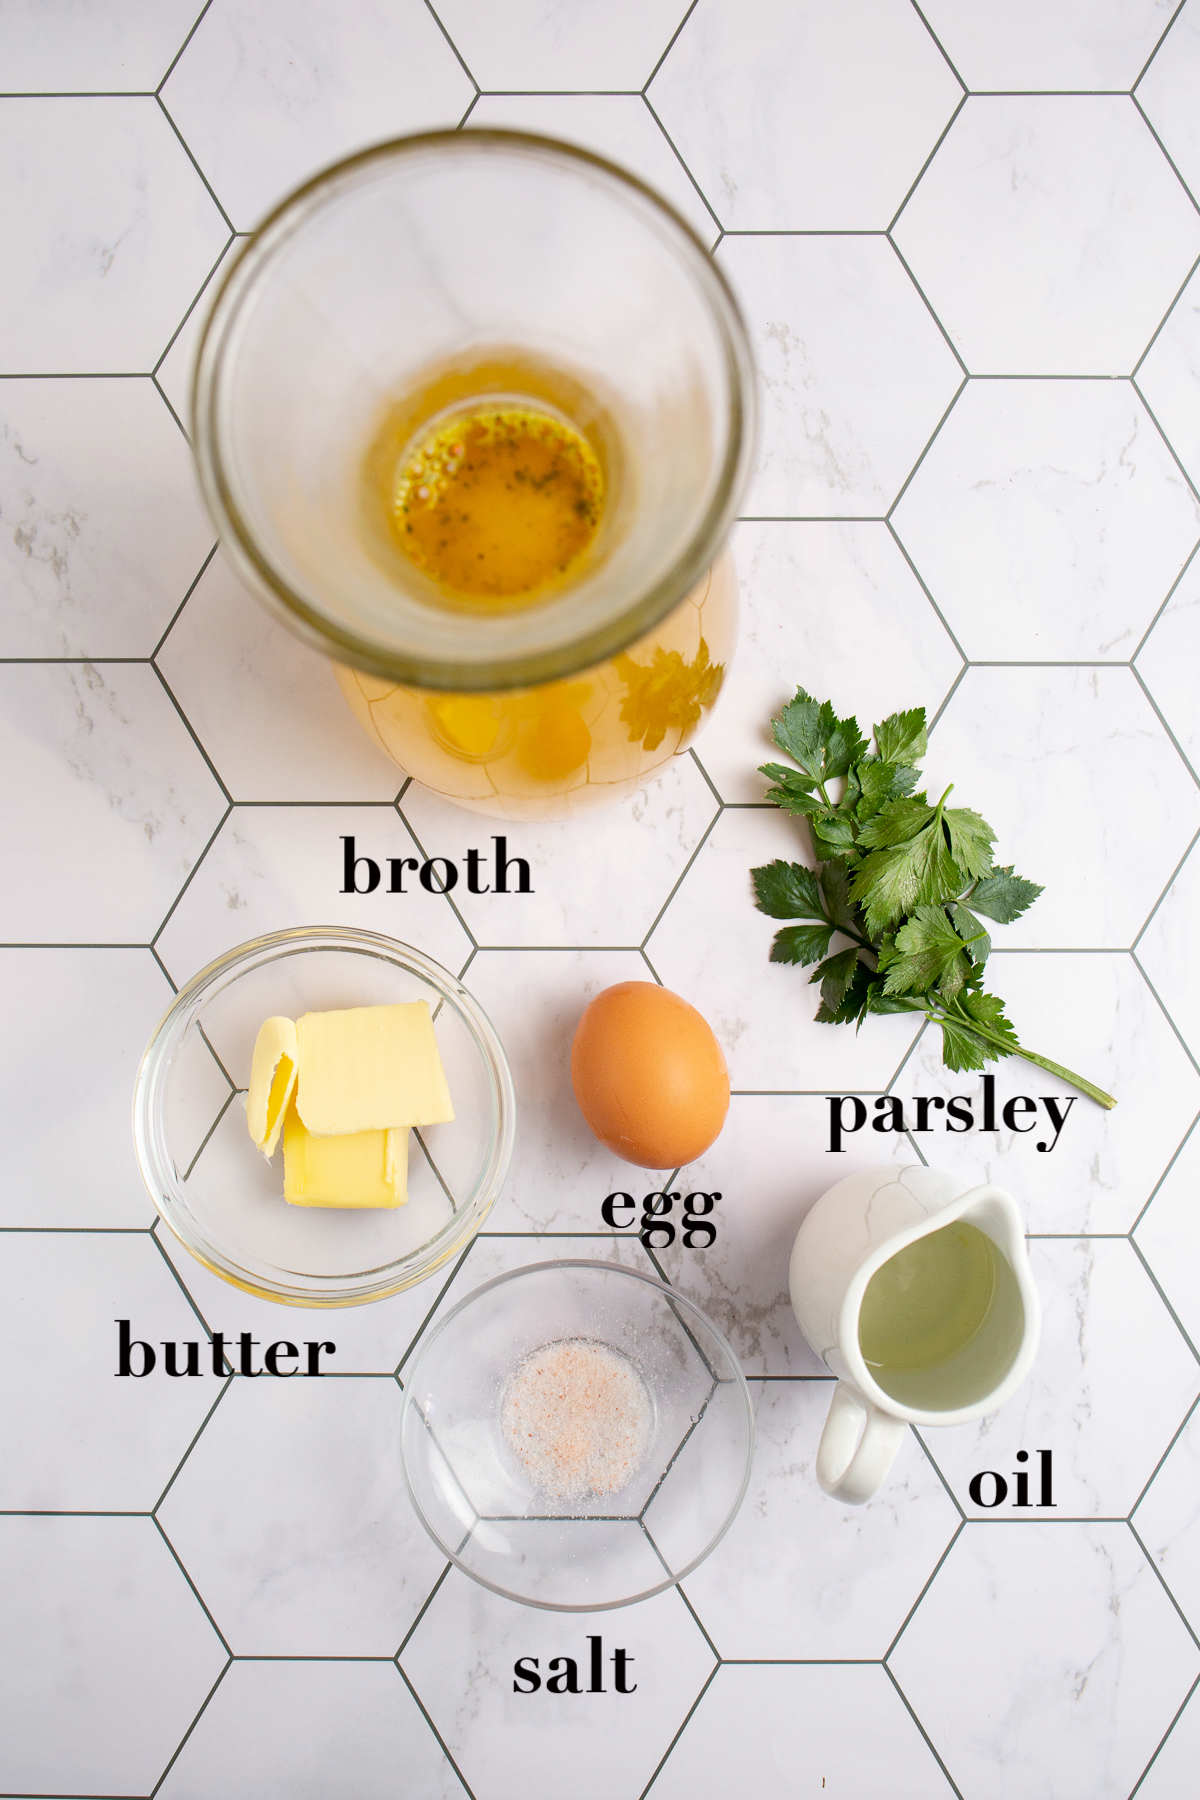 Overhead photograph of the table with six ingredients.